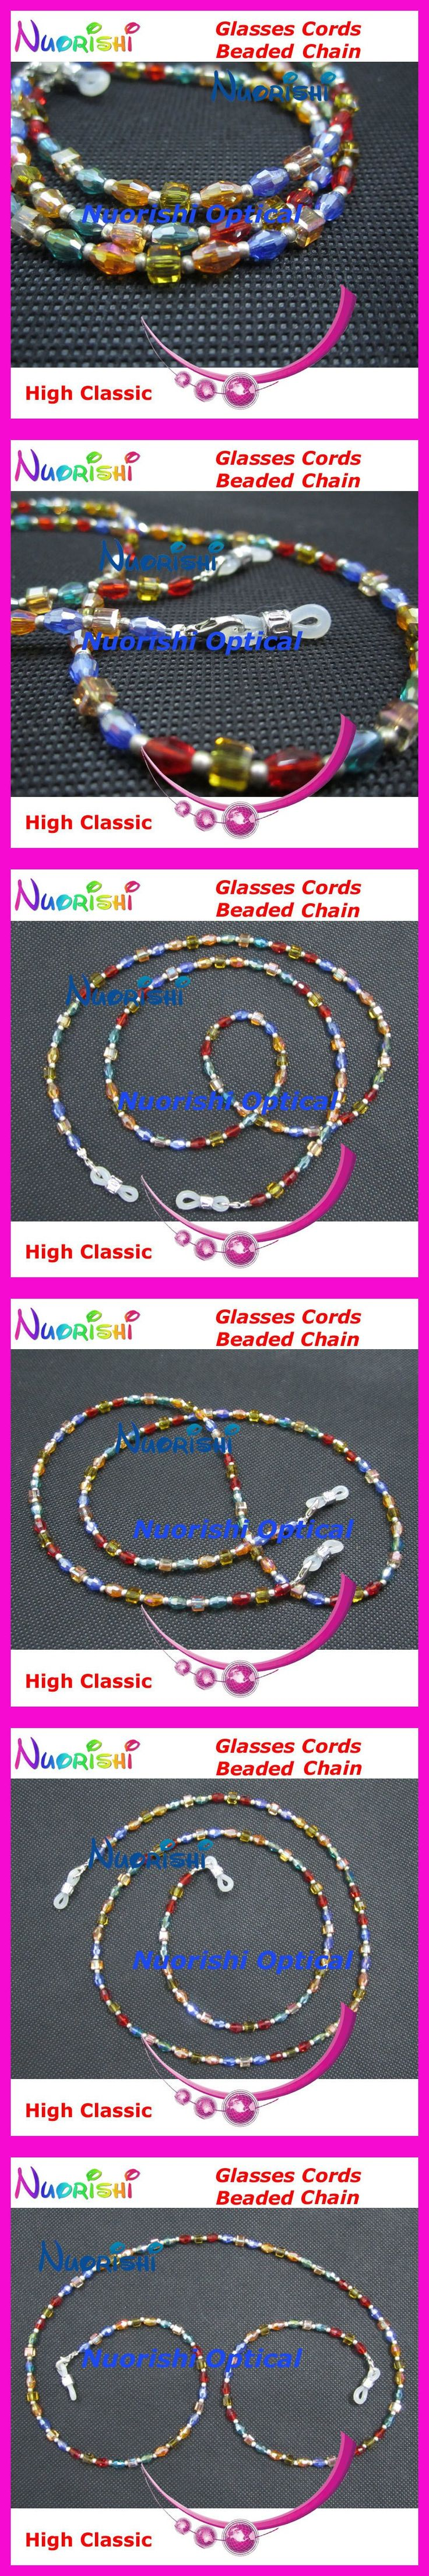 Free shipping L818 high classic nice beaded eyeglasses sunglasses eyewear spectacle chain cords $13.88